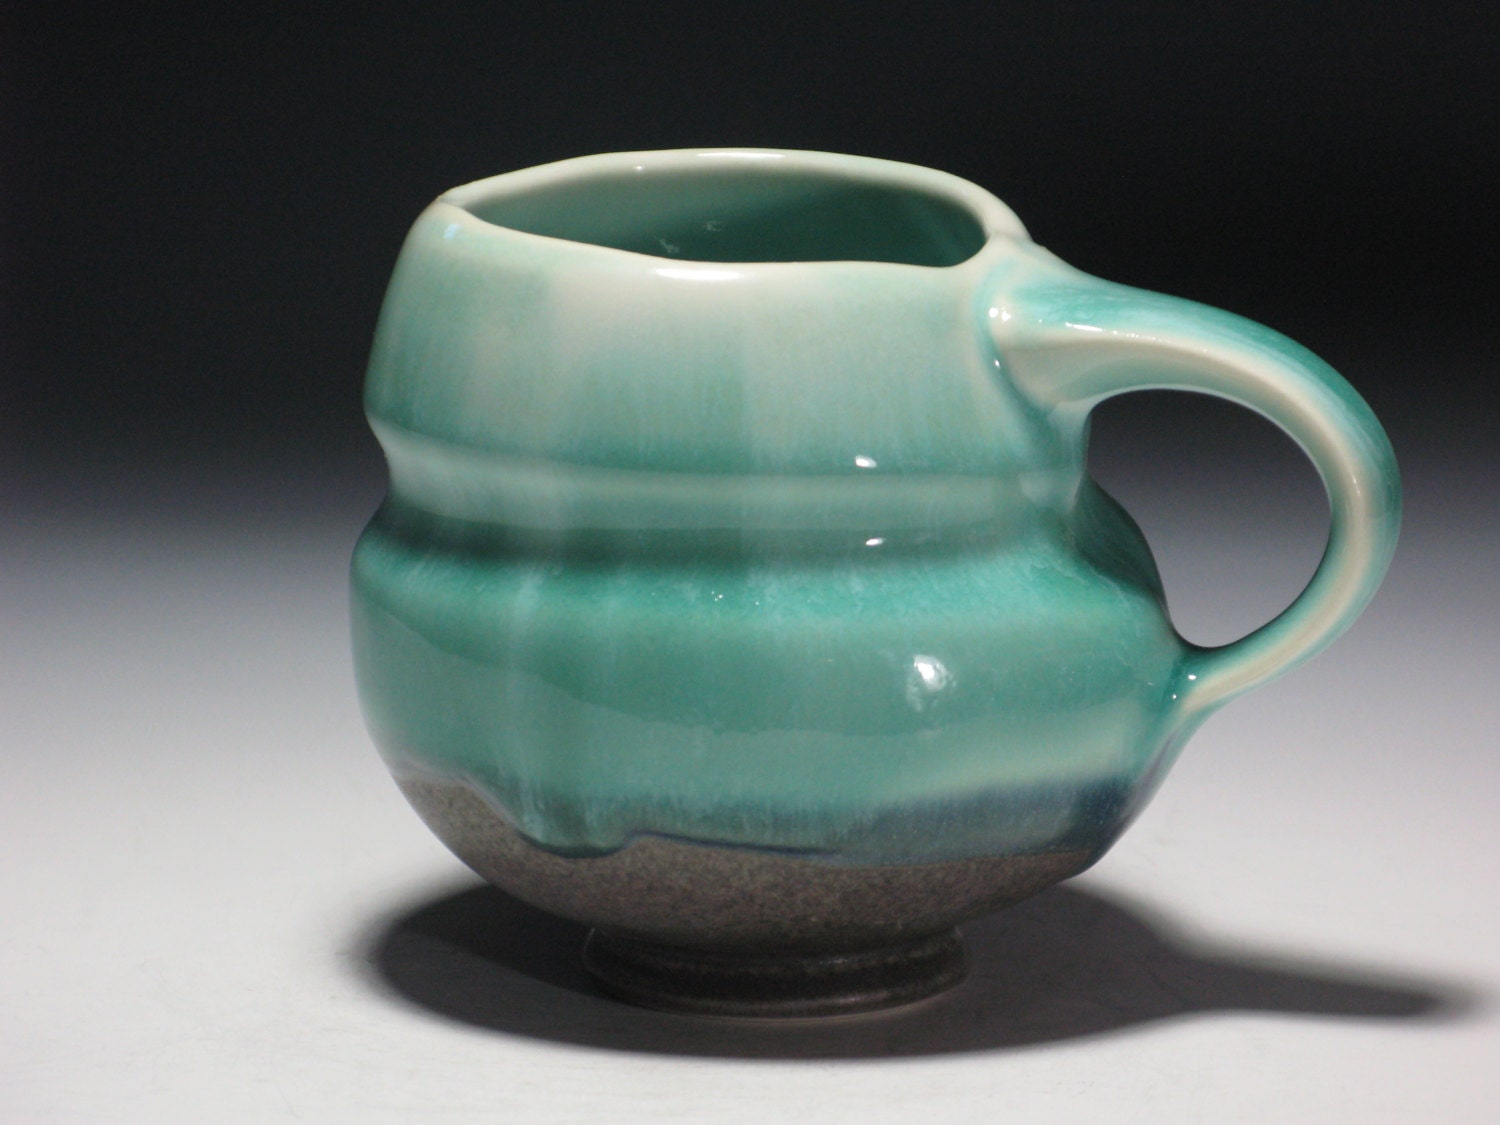 Pottery Mug Ceramic Porcelain Handmade Coffee Tea Turquoise Green Blue Grey